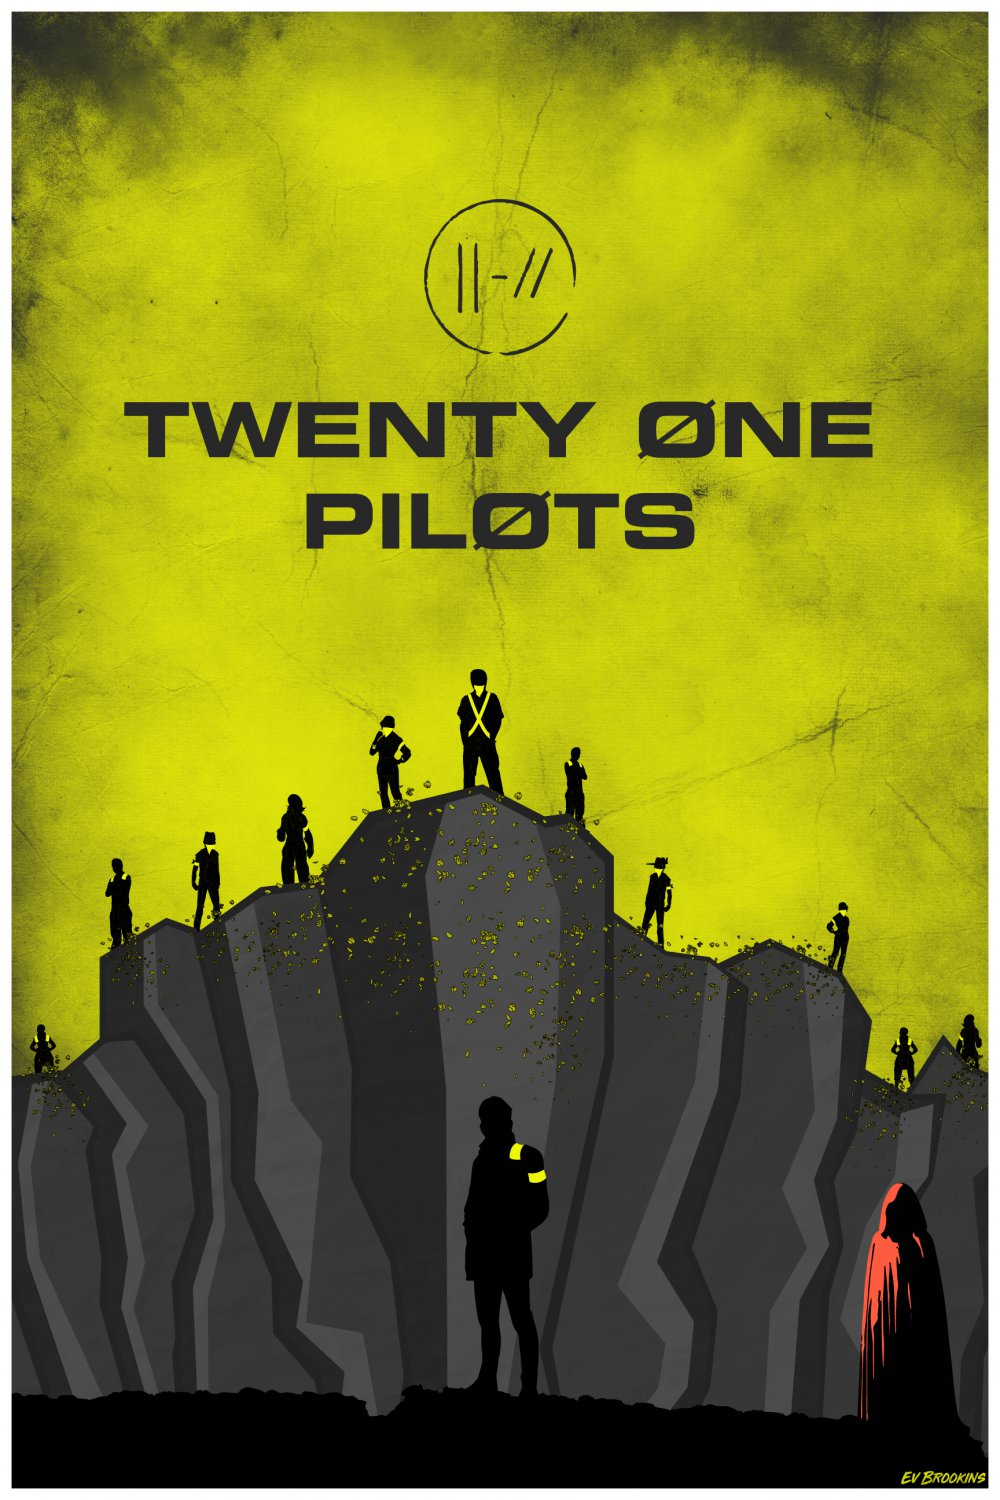 Twenty One Pilots  Poster 24x36 inches